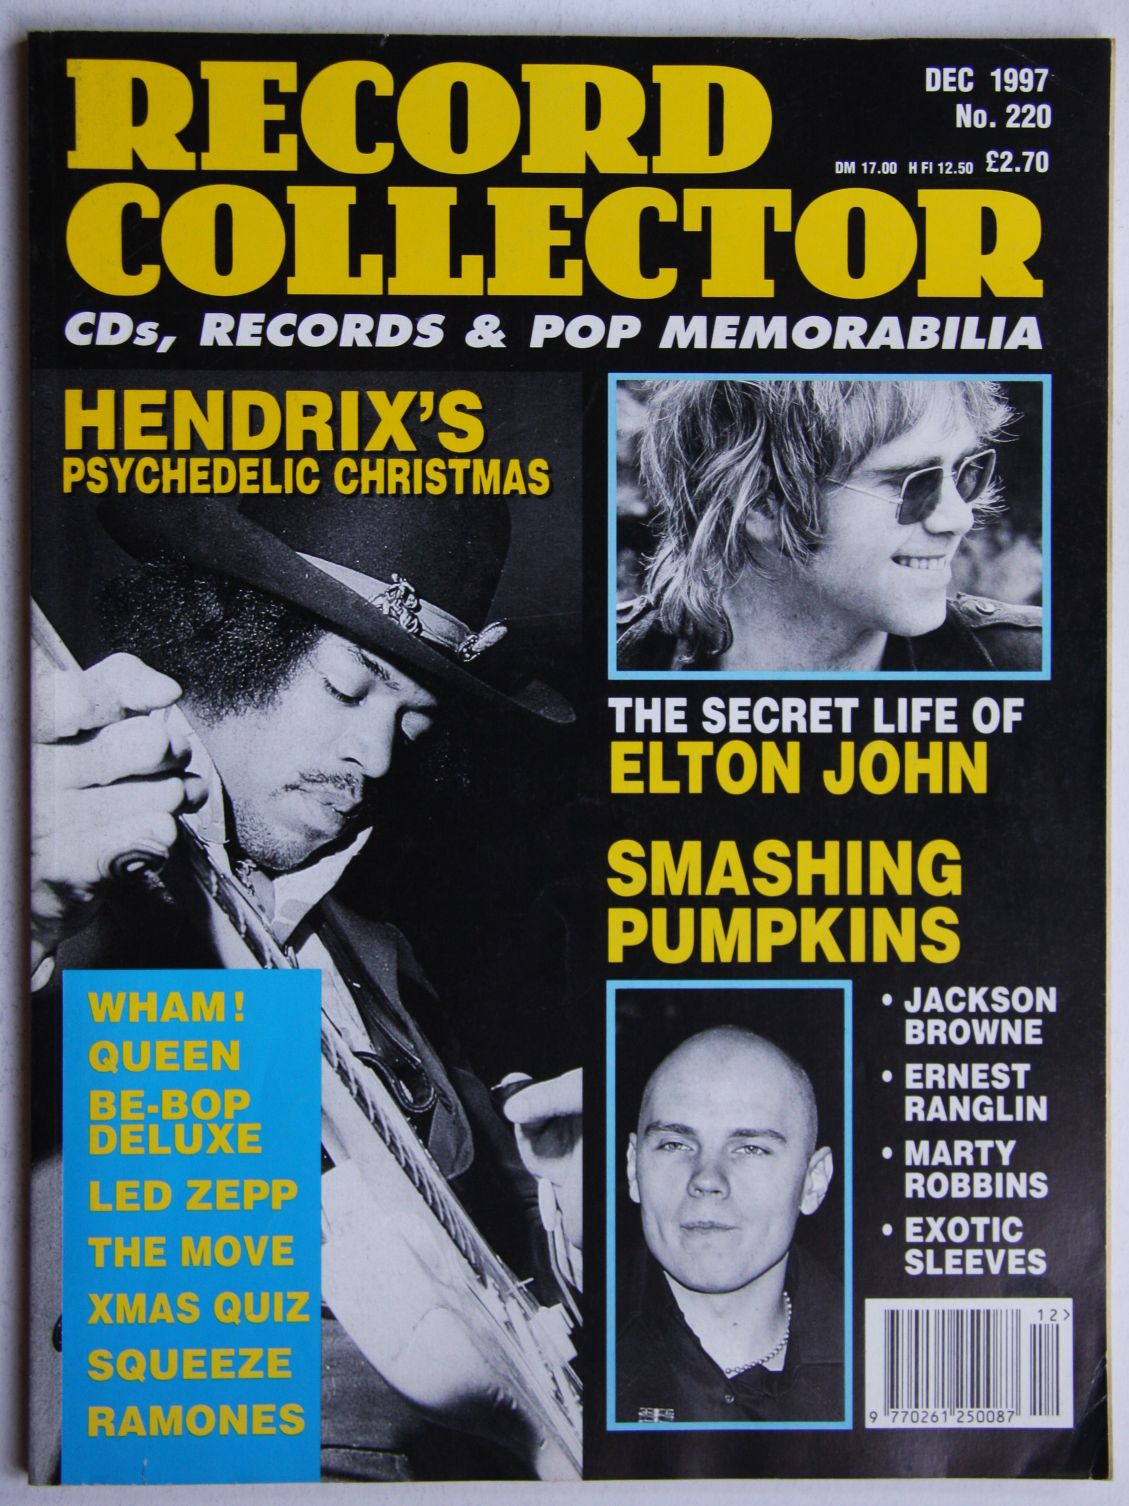 Jimi Hendrix - Uk Record Collector Magazine December 1997